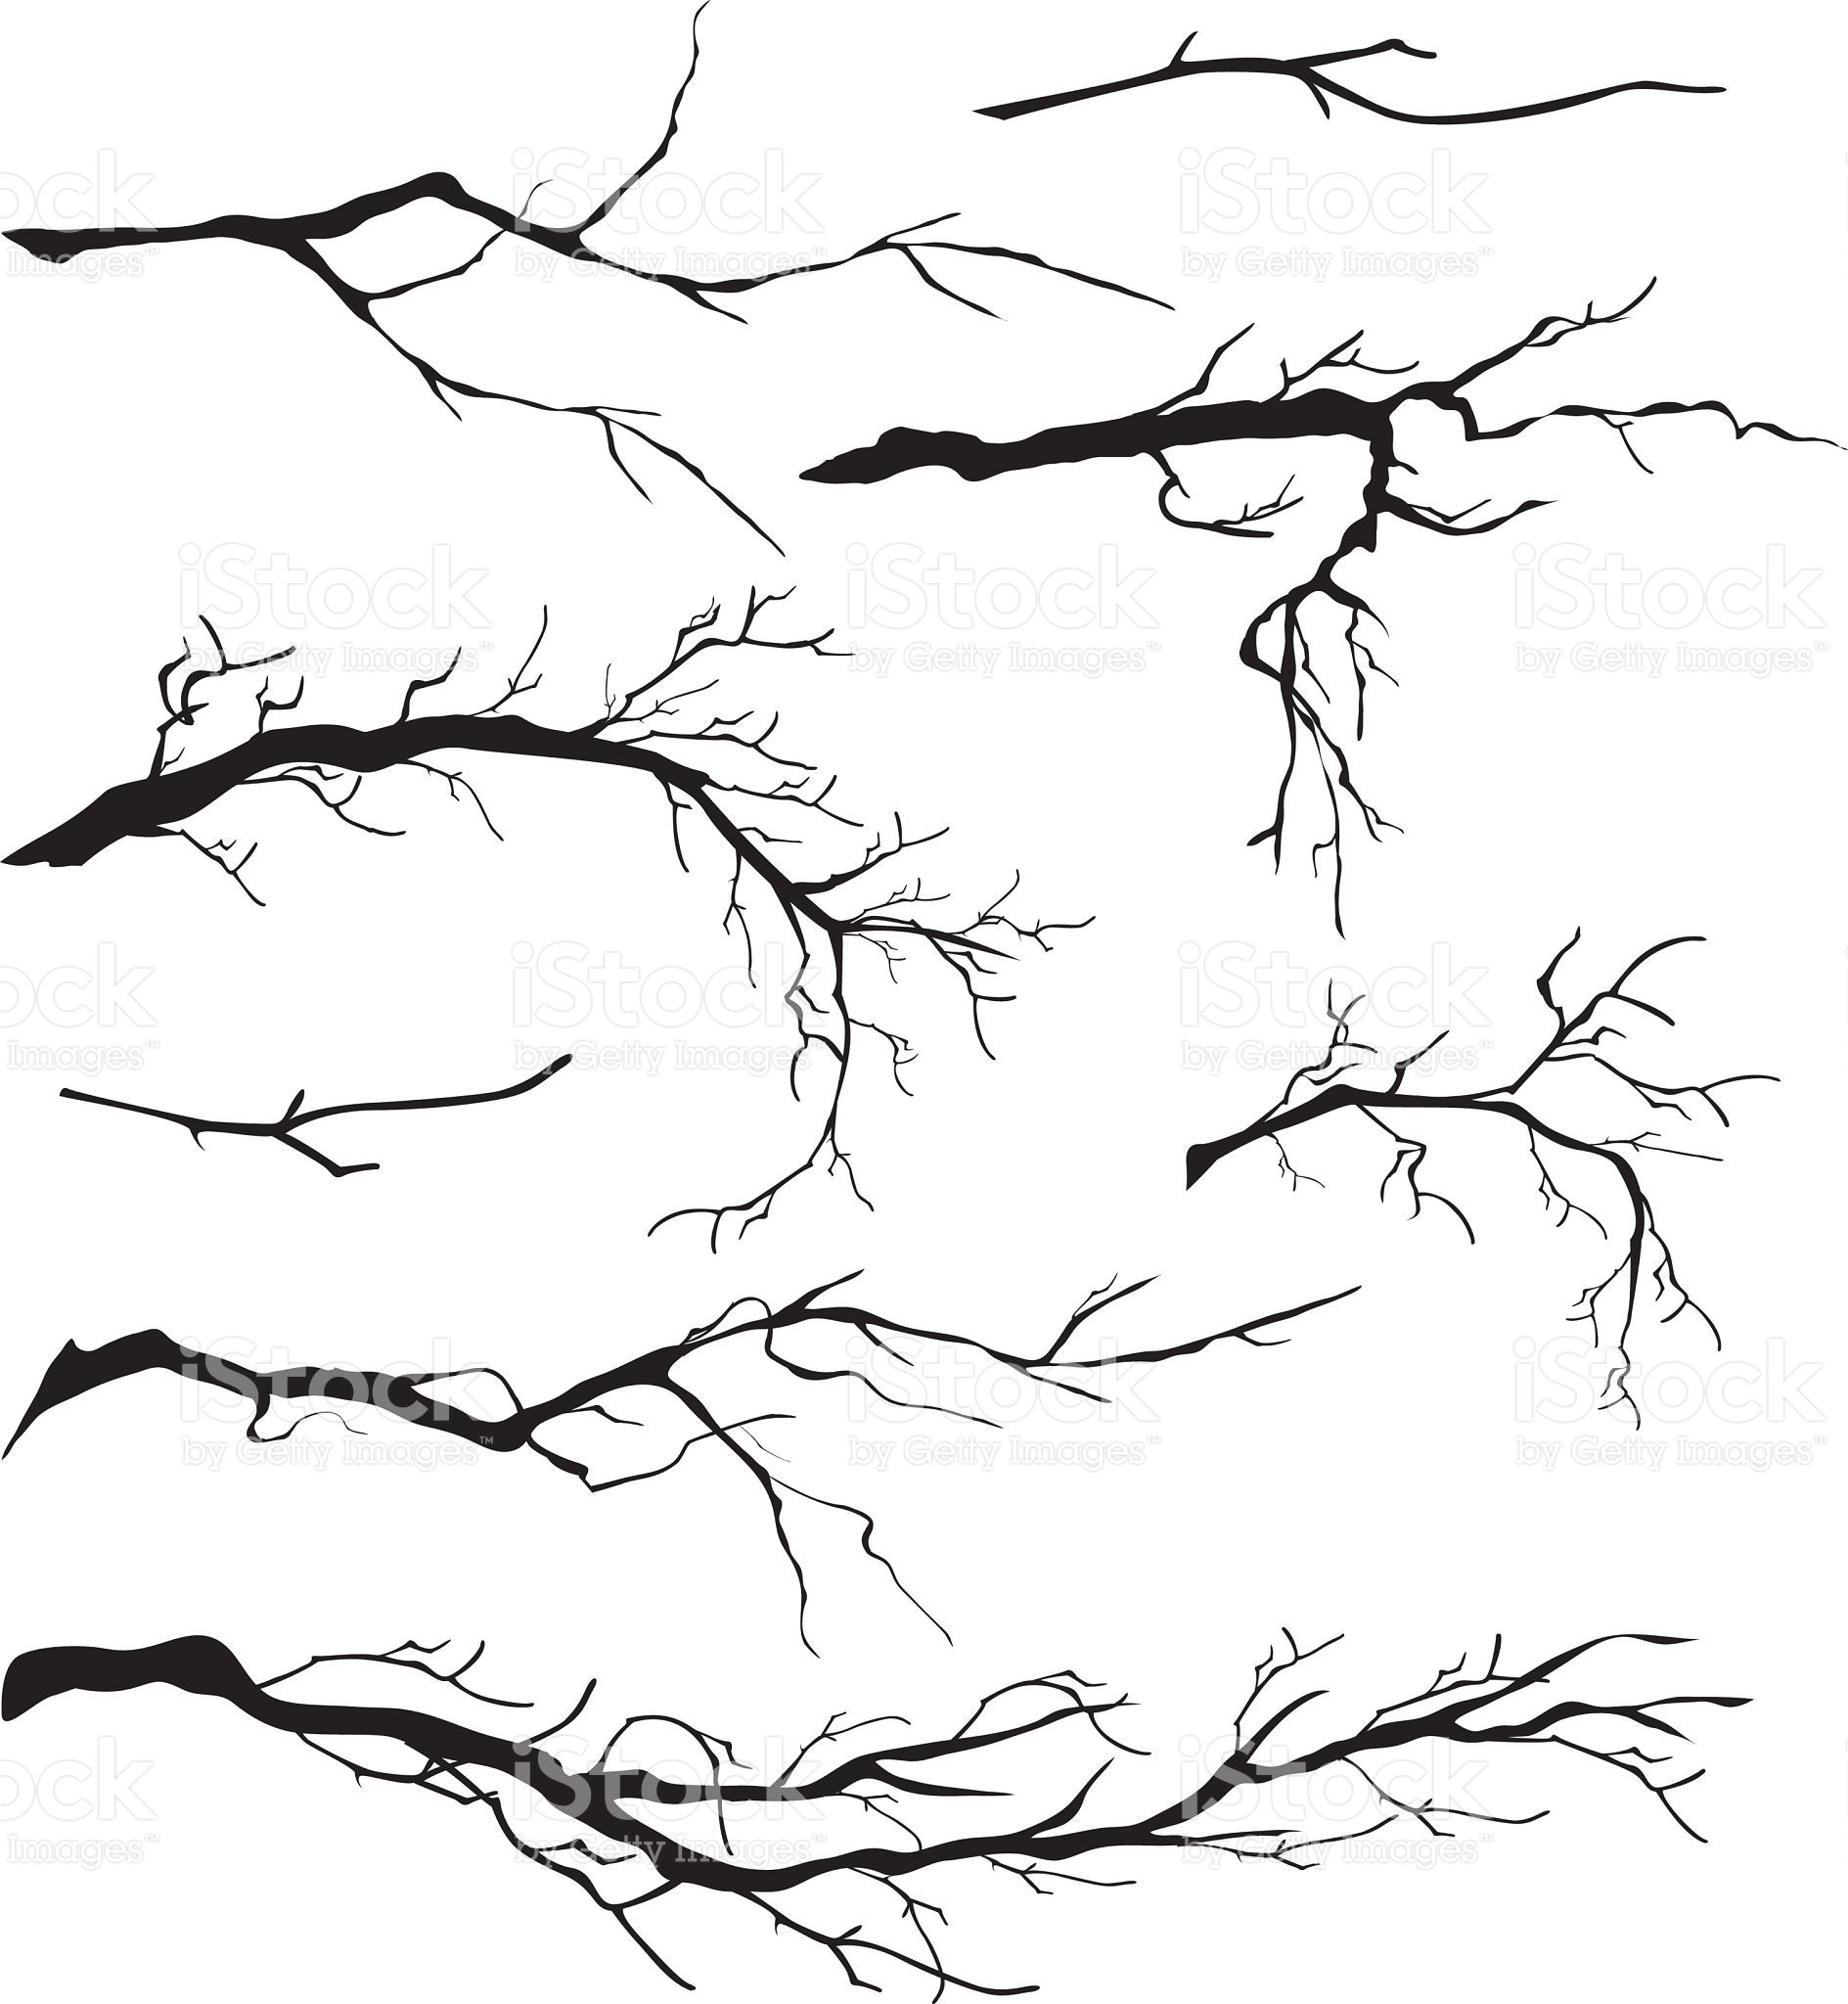 An Assortment of Bare Tree Isolated Branch Silhouettes. The branches…